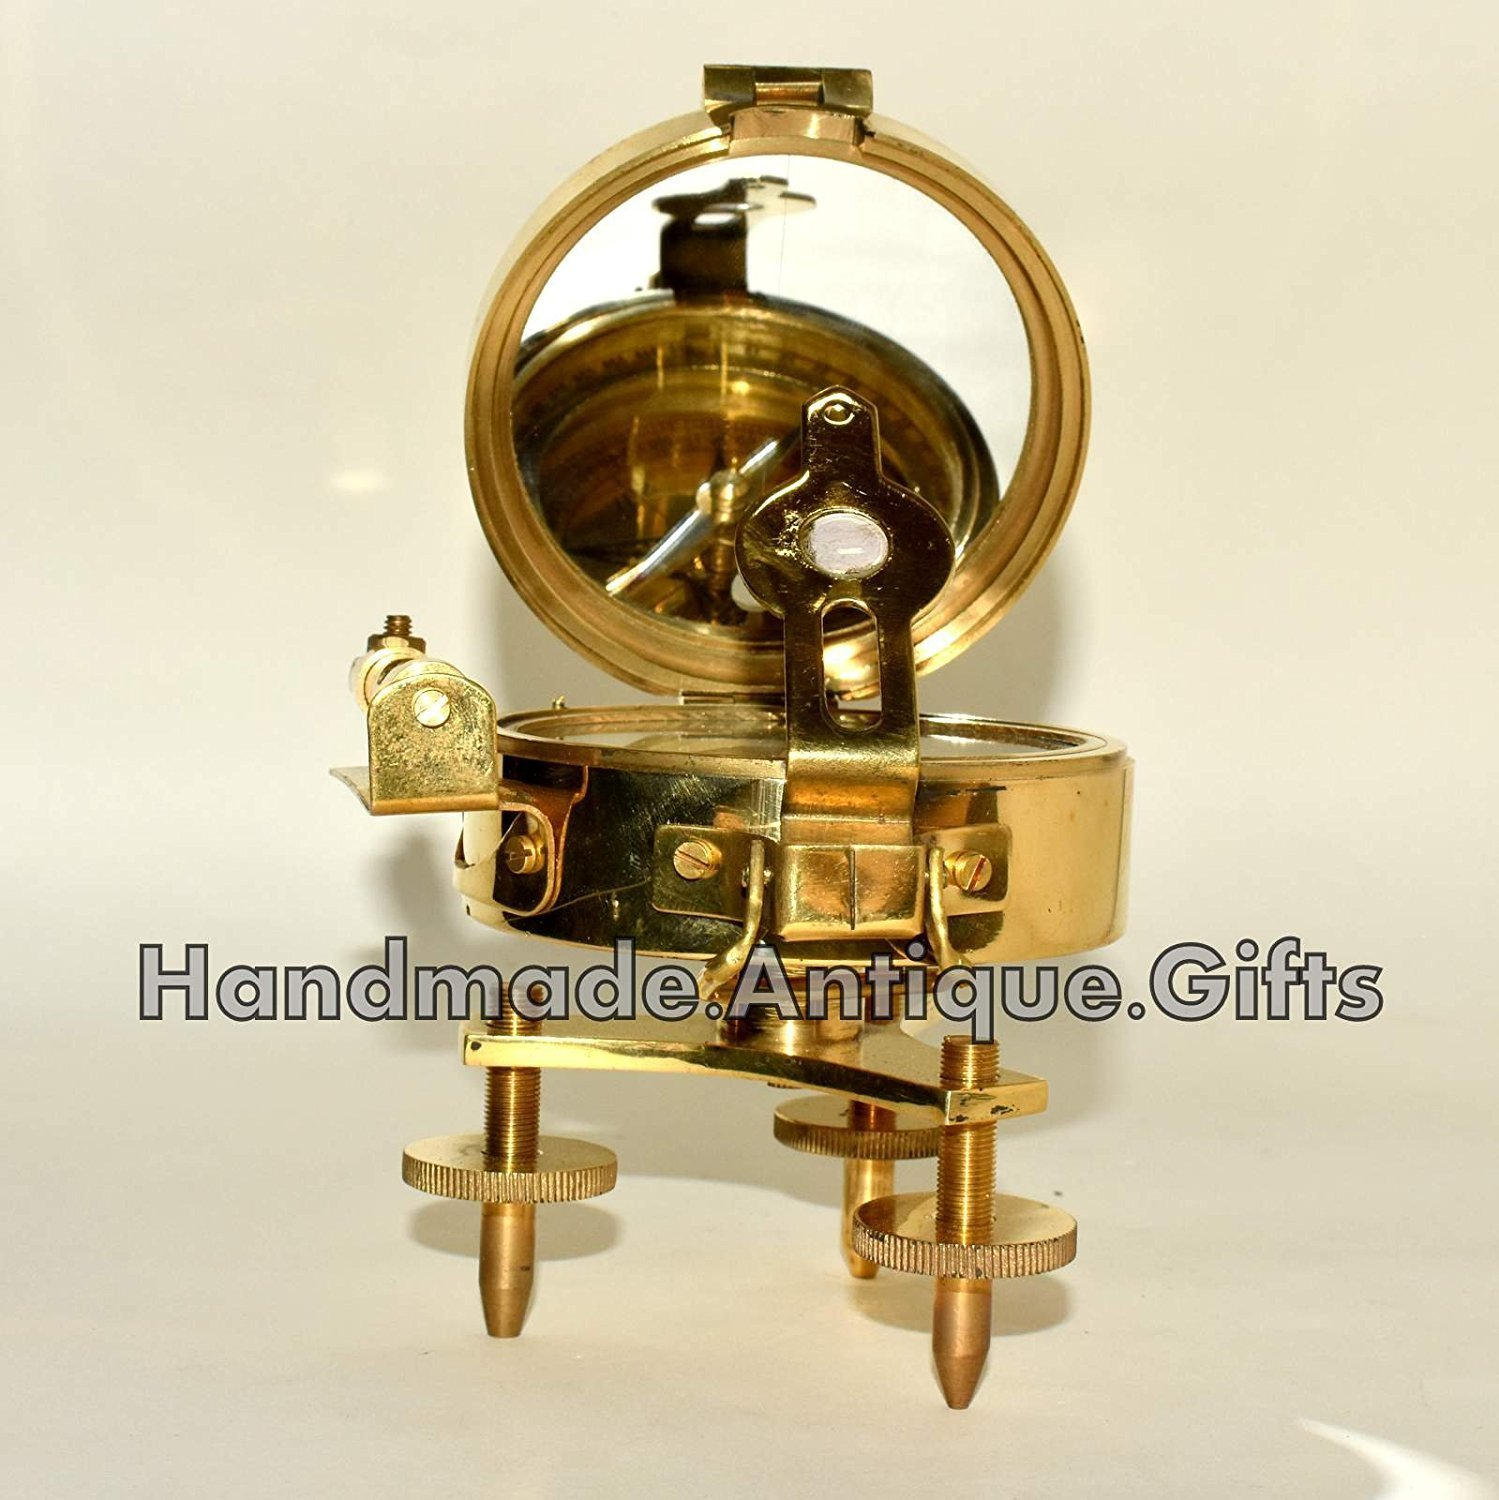 saif.nautical.store NEW ANTIQUE BRASS BRUNTON COMPASS WITH STAND LEVEL VITAGE NAUTICAL COMPASS GIFT